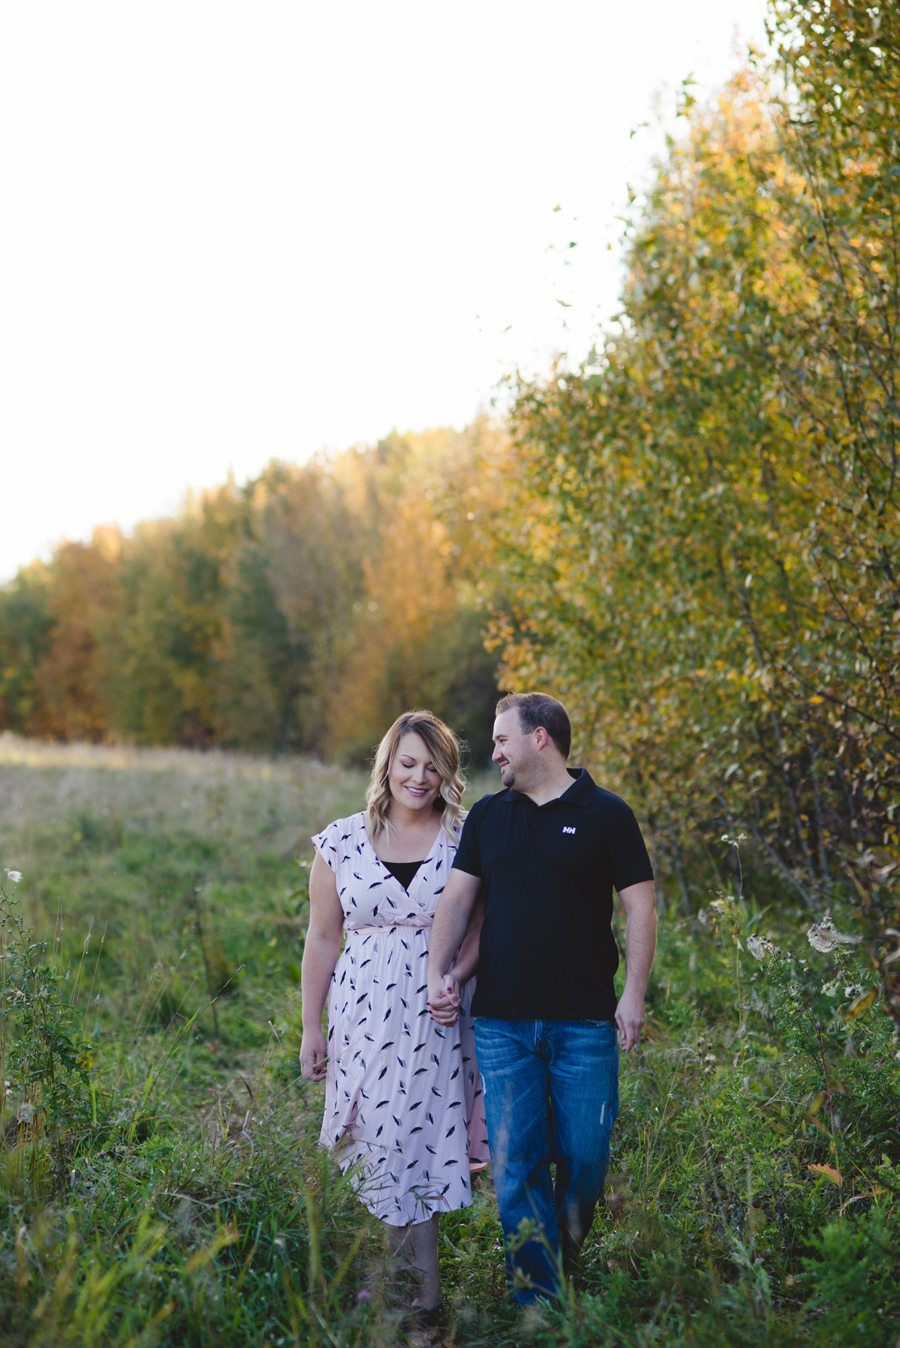 bbcollective_yeg_2016_marilynandian_engagement_photography001.jpg